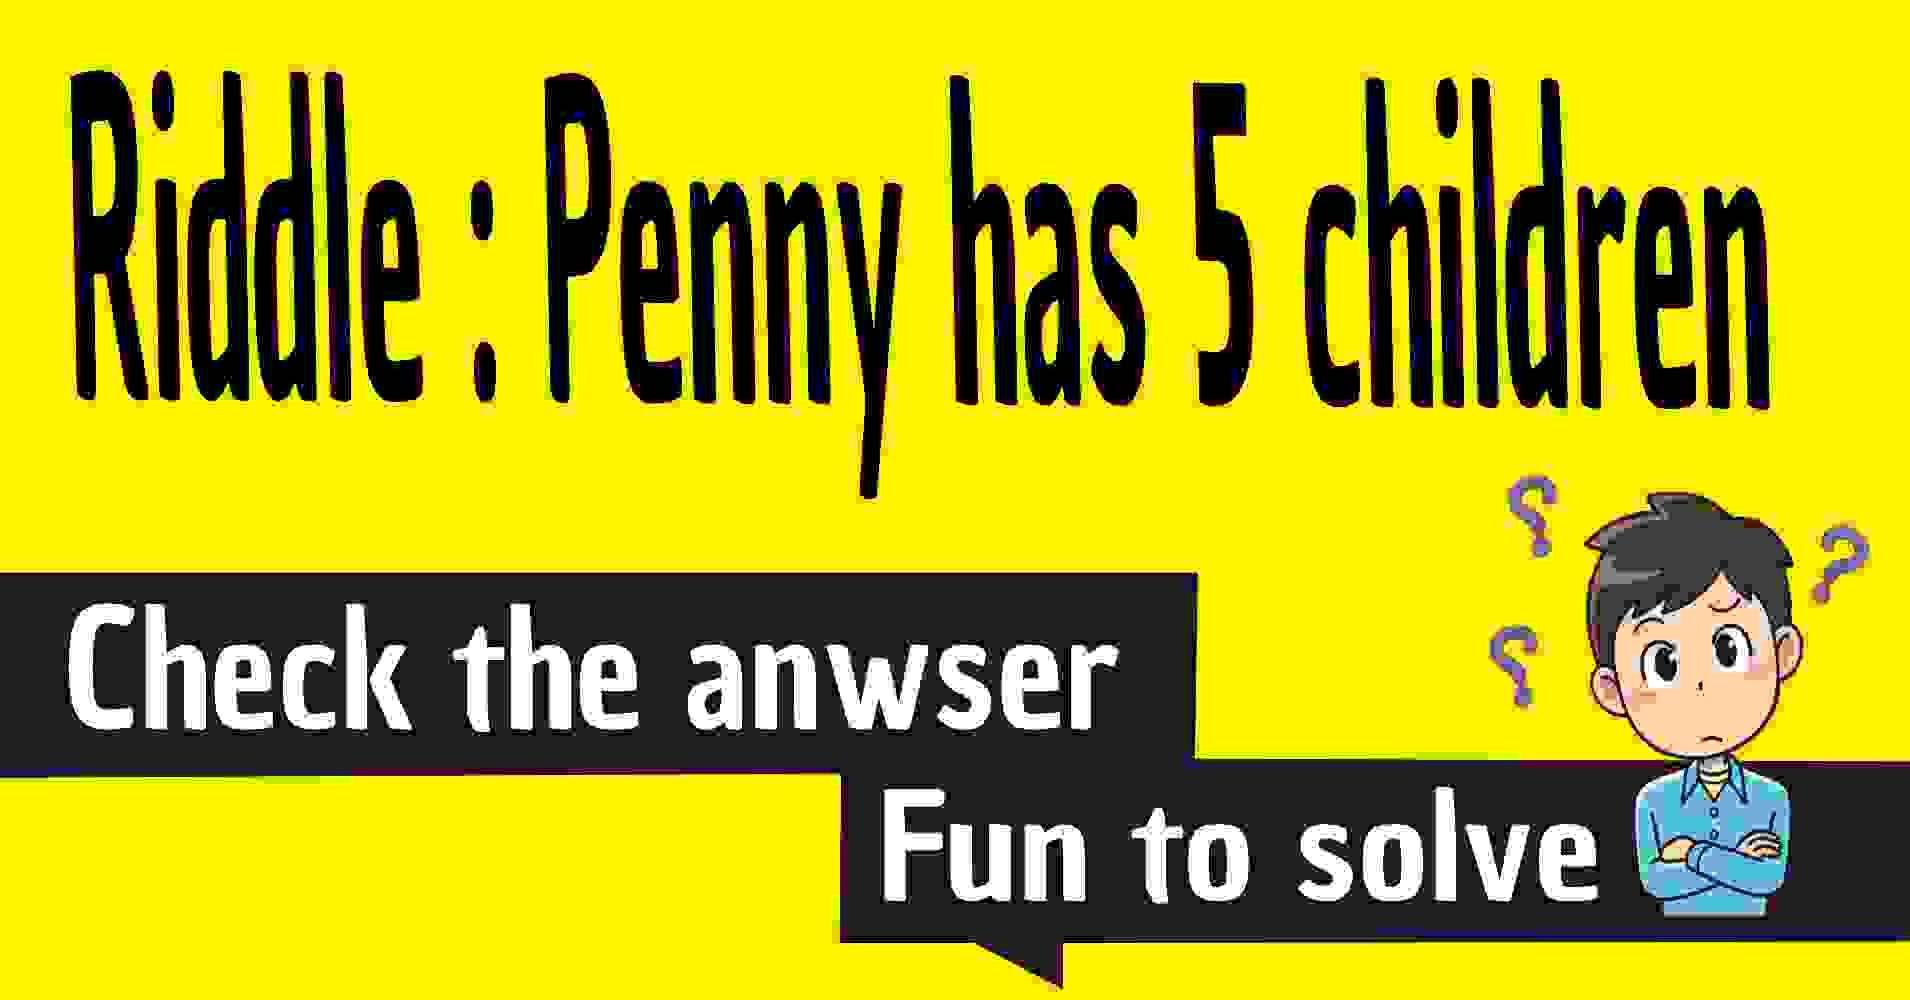 Penny has five children riddle answer